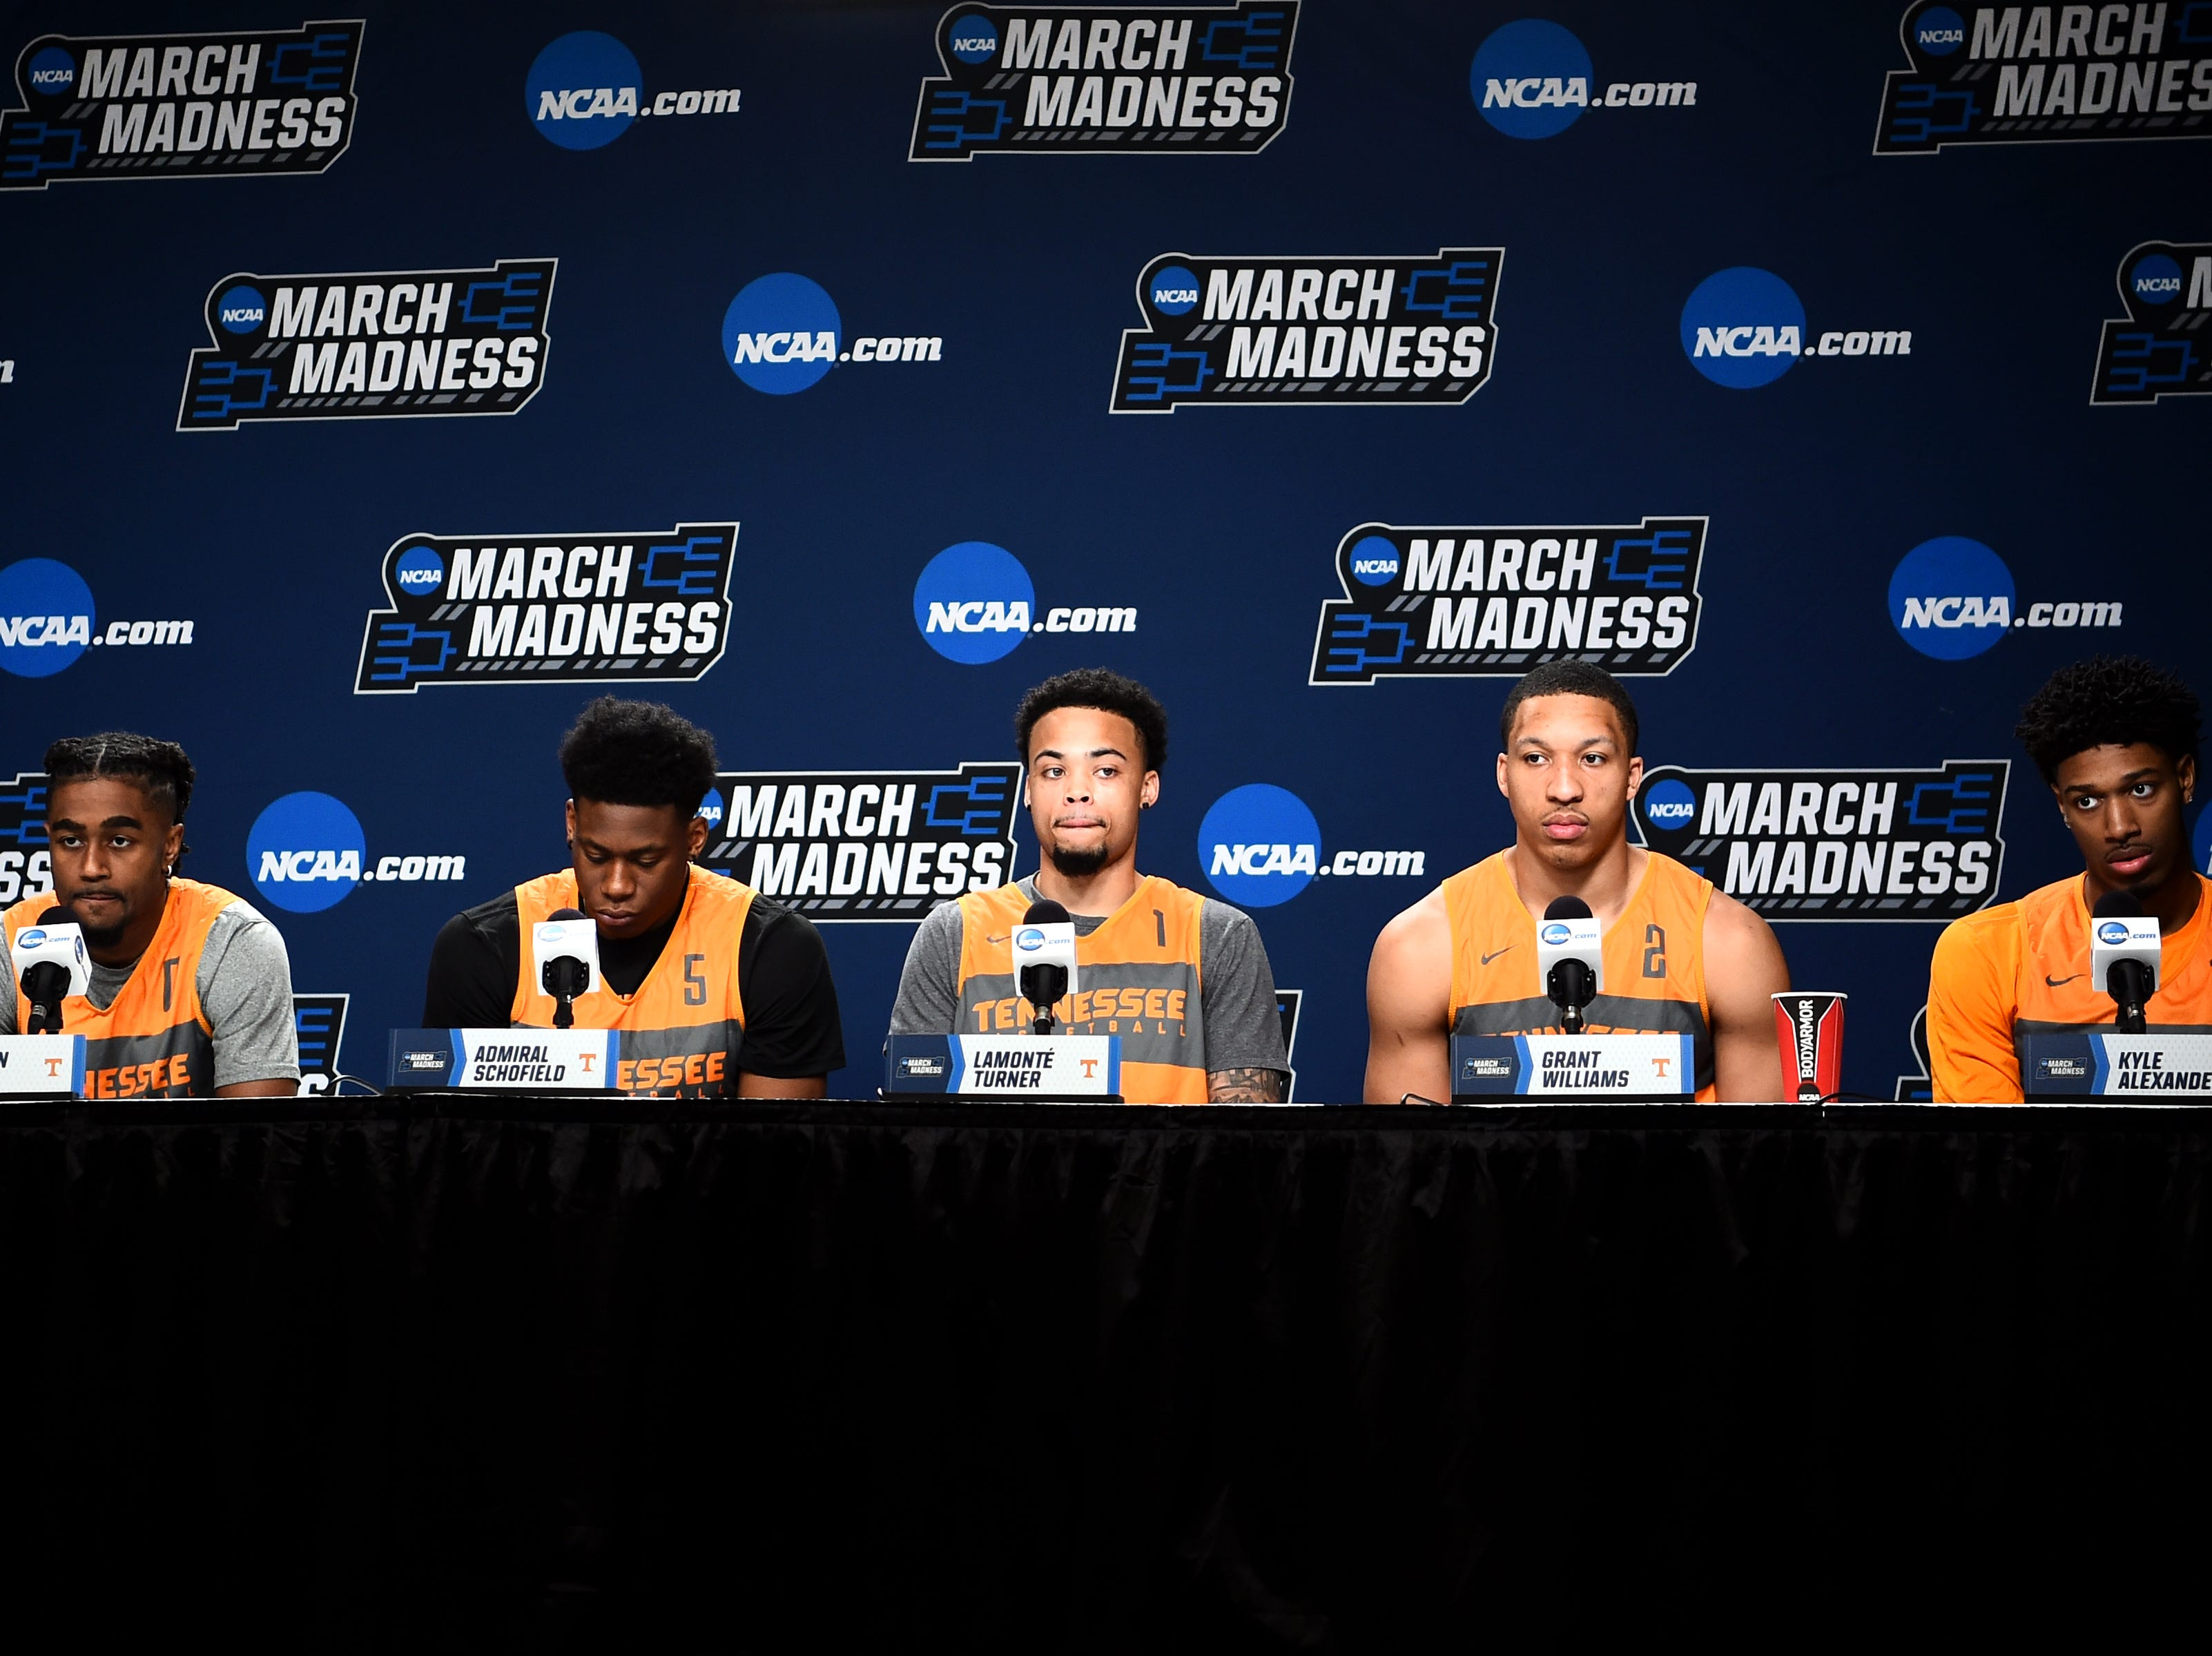 From left, Tennessee guard Jordan Bone (0), Tennessee guard Admiral Schofield (5), Tennessee guard Lamonte Turner (1), Tennessee forward Grant Williams (2) and Tennessee forward Kyle Alexander (11) speak at a press conference on Saturday, March 23, 2019, before the Tennessee Volunteers and Iowa Hawkeyes compete against one another in the second round of the NCAA Tournament held at Nationwide Arena in Columbus, Ohio  on Sunday, March 24, 2019.